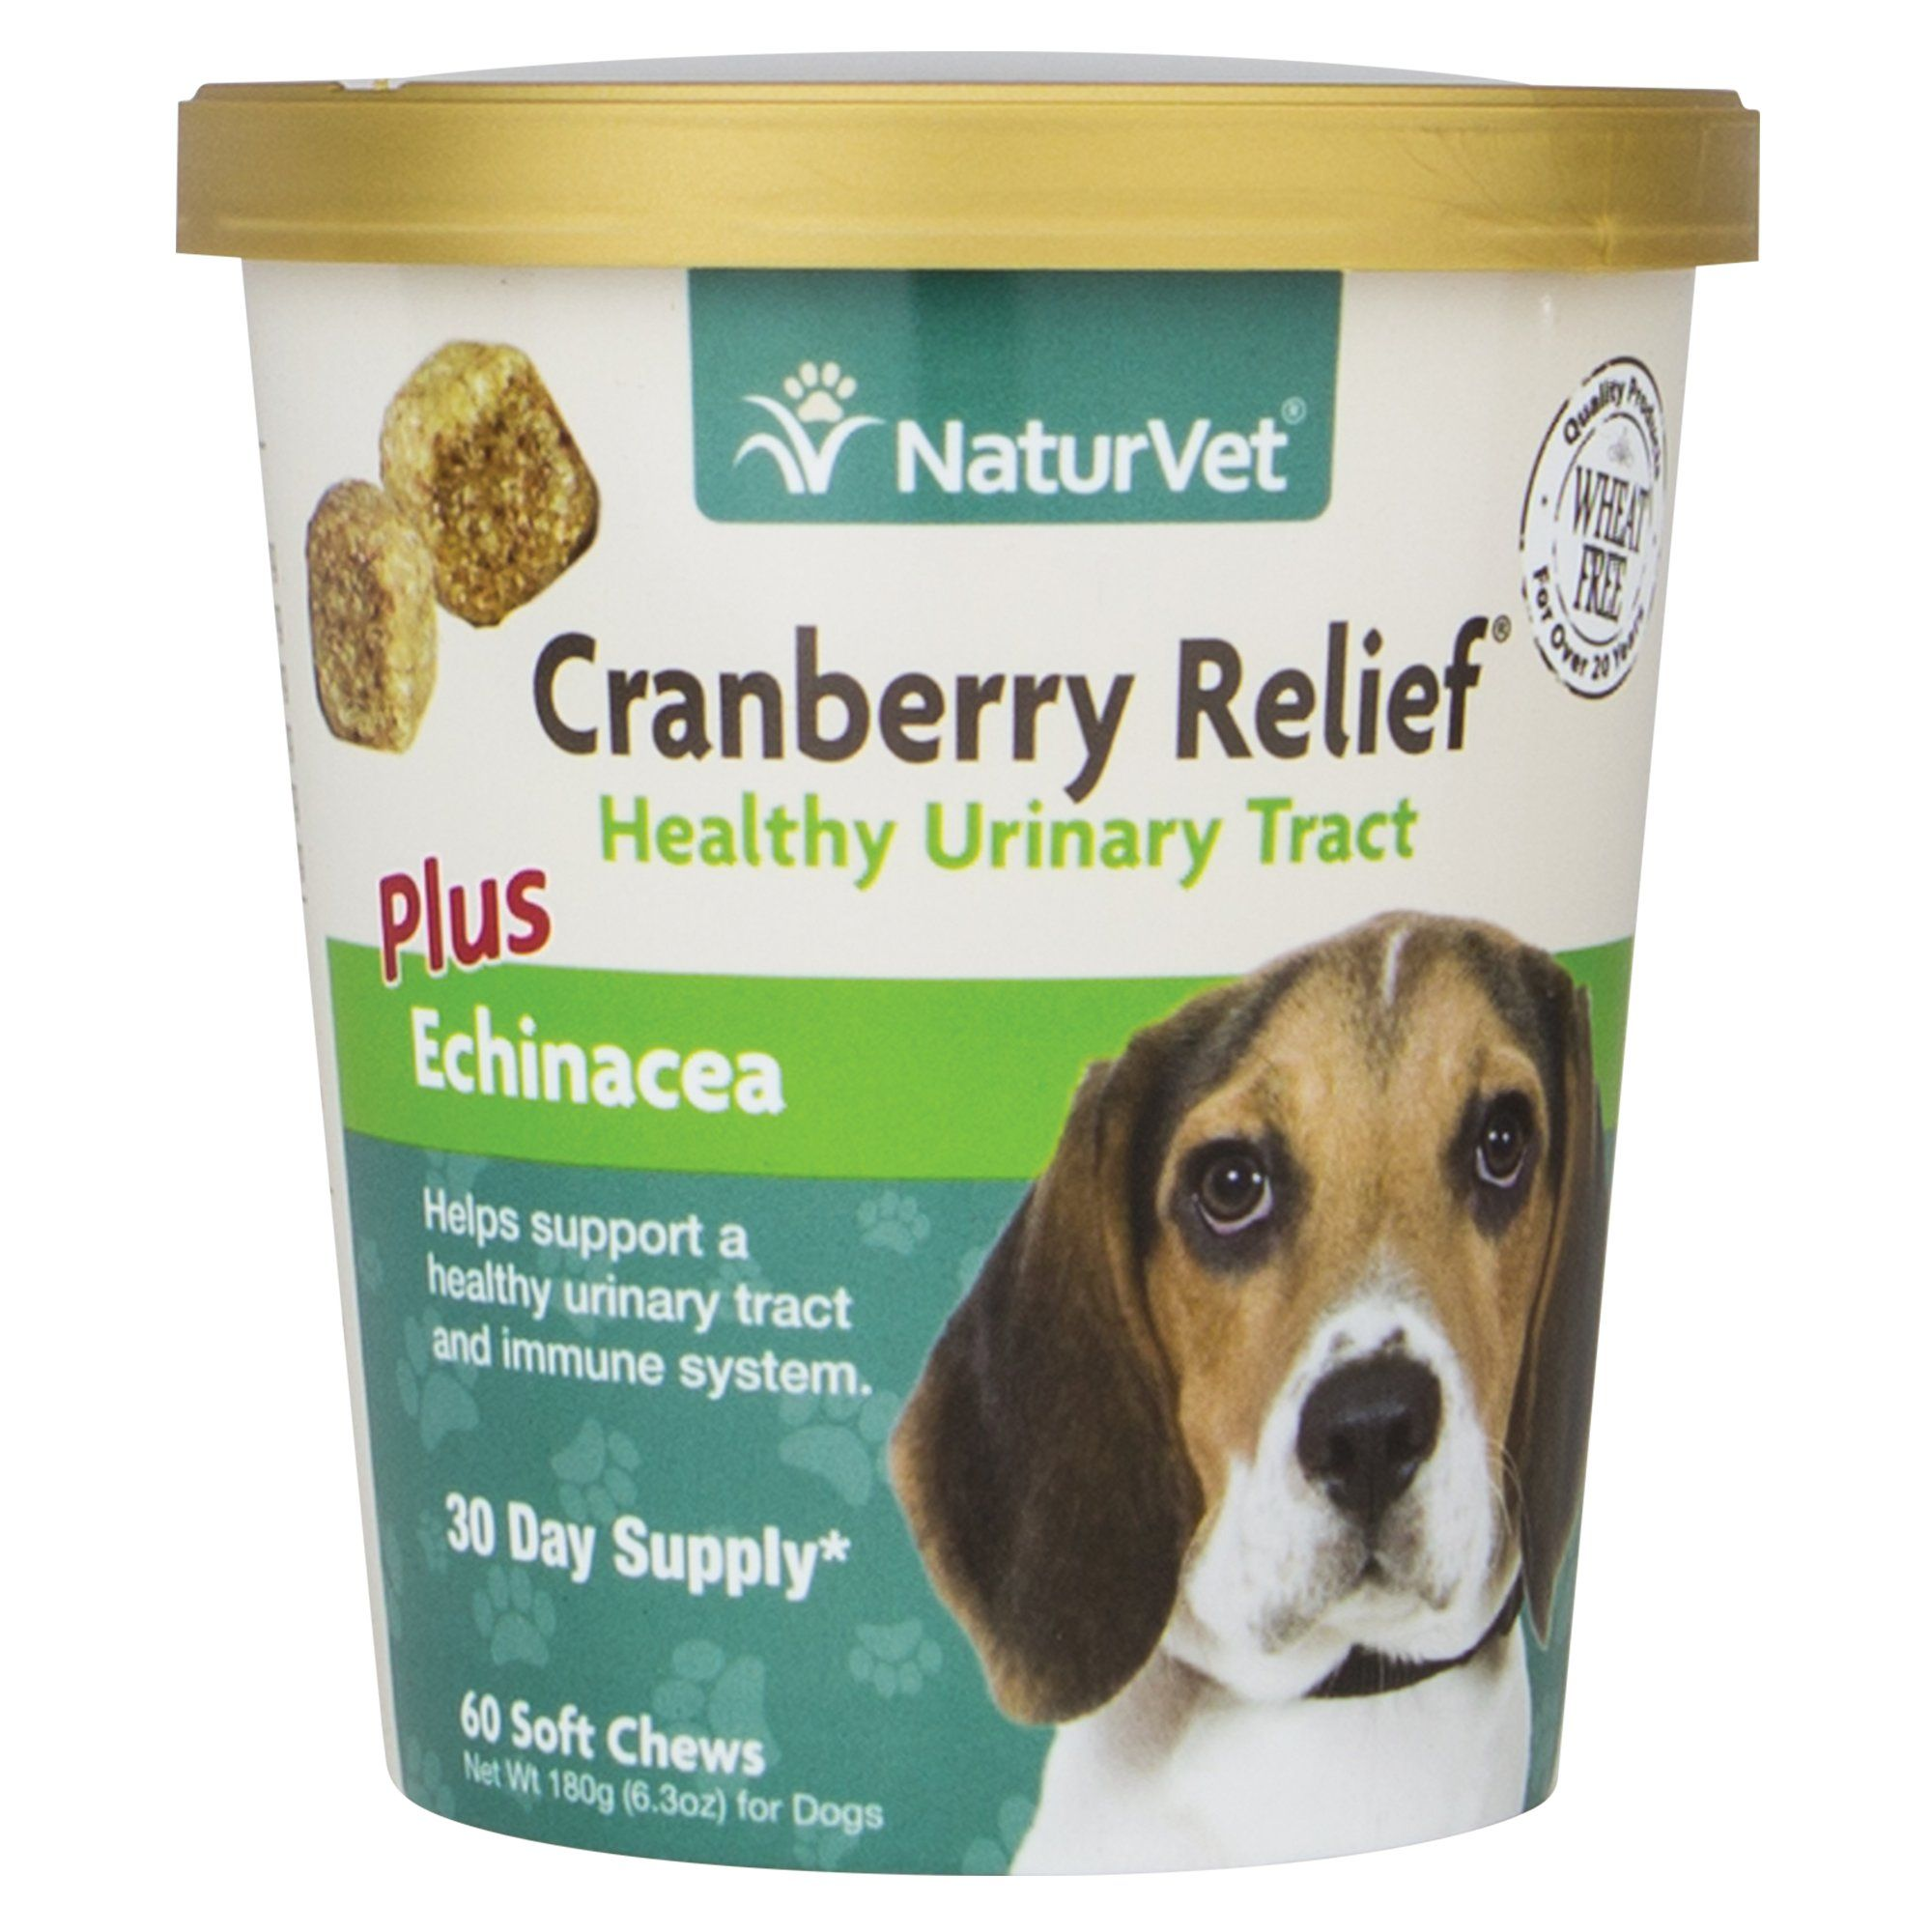 Naturvet cranberry relief healthy urinary tract dog soft